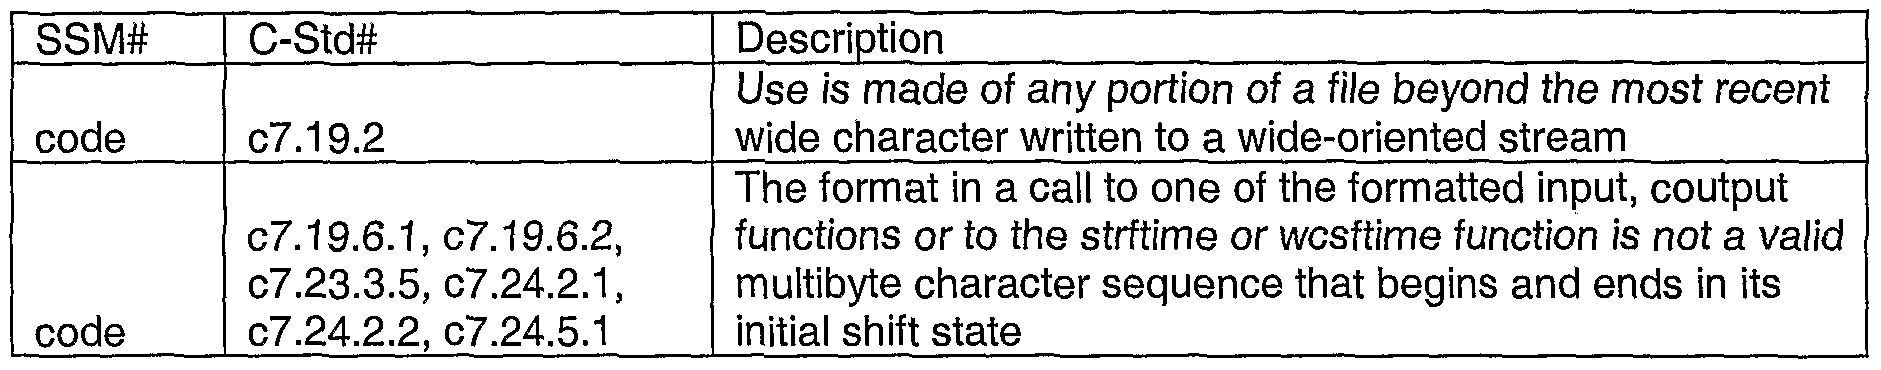 WO2005029241A2 - Automated safe secure techniques for